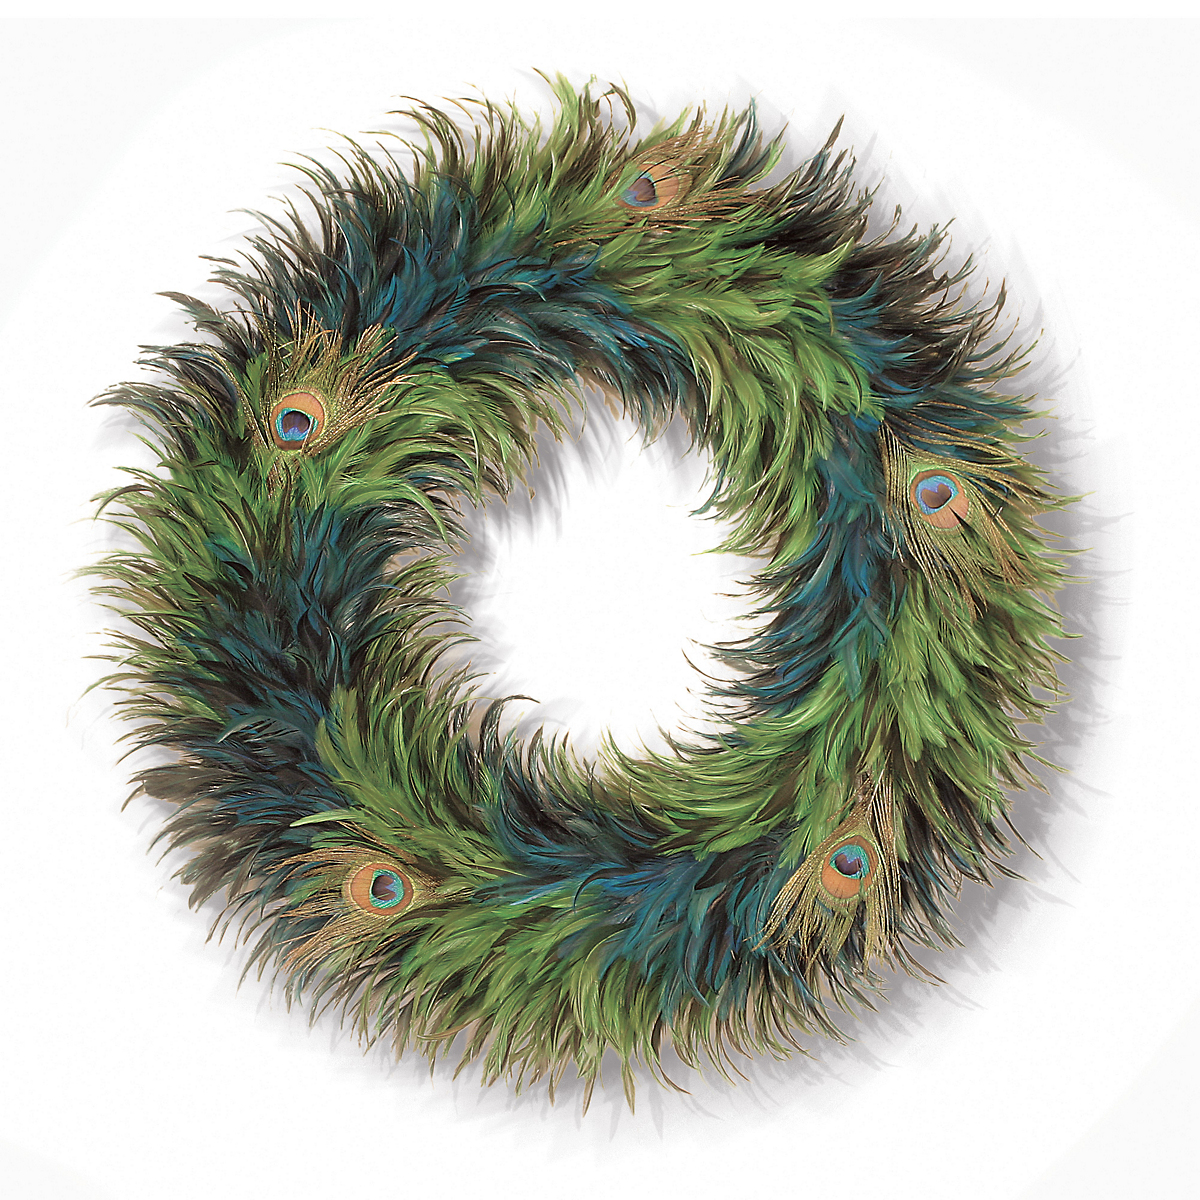 Royal Peacock Feathers Wreath